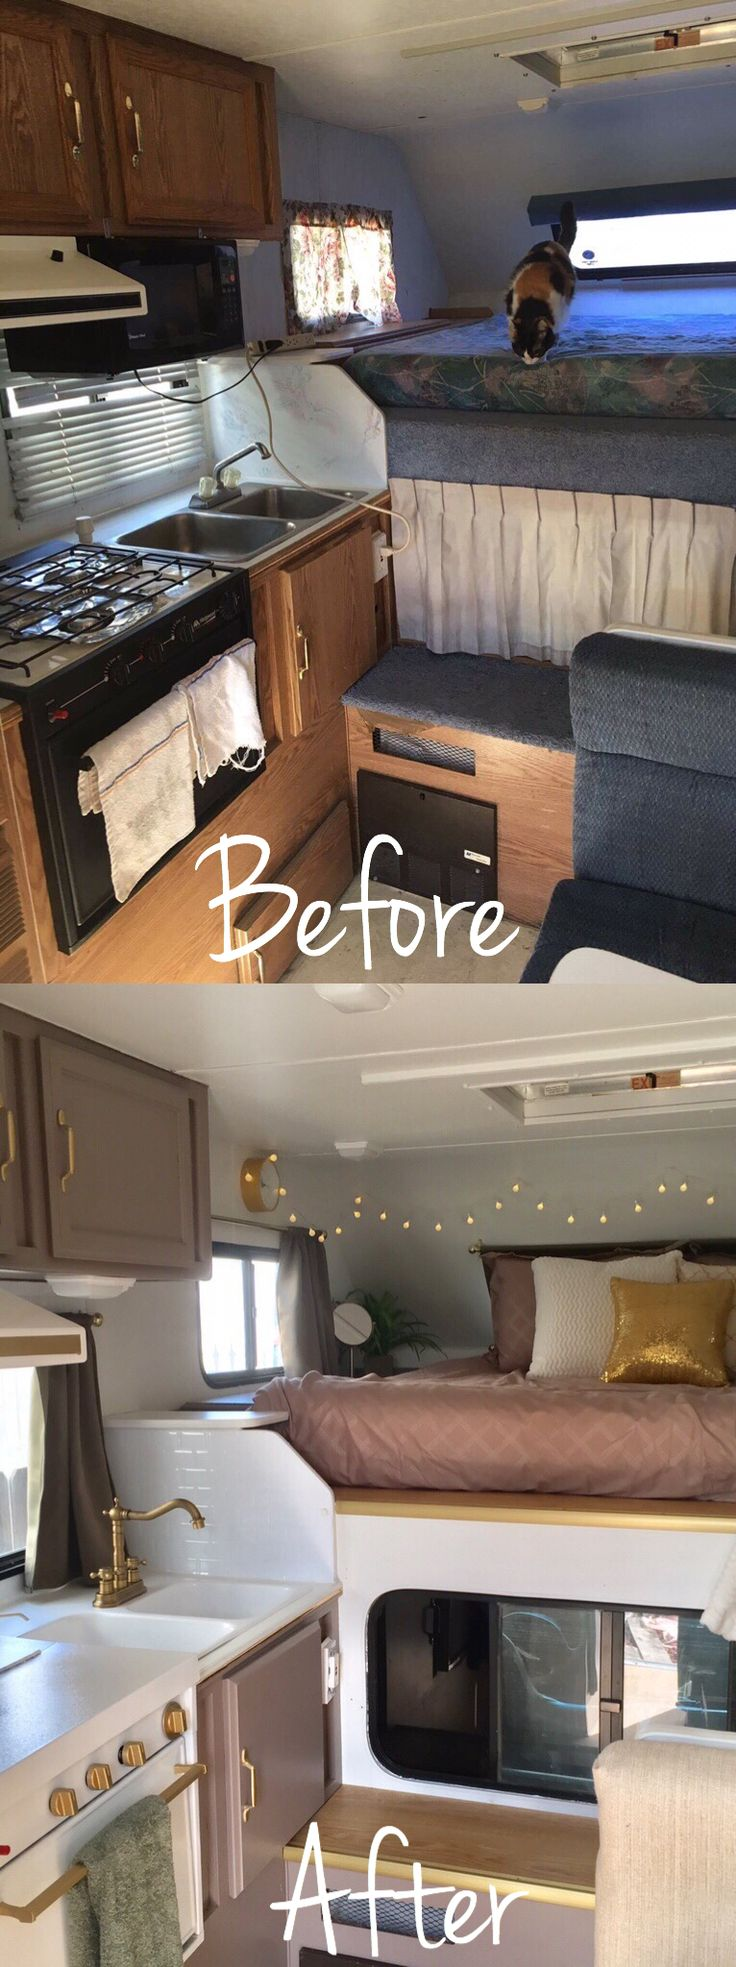 Truck camper trailer remodel before and after insta_sara